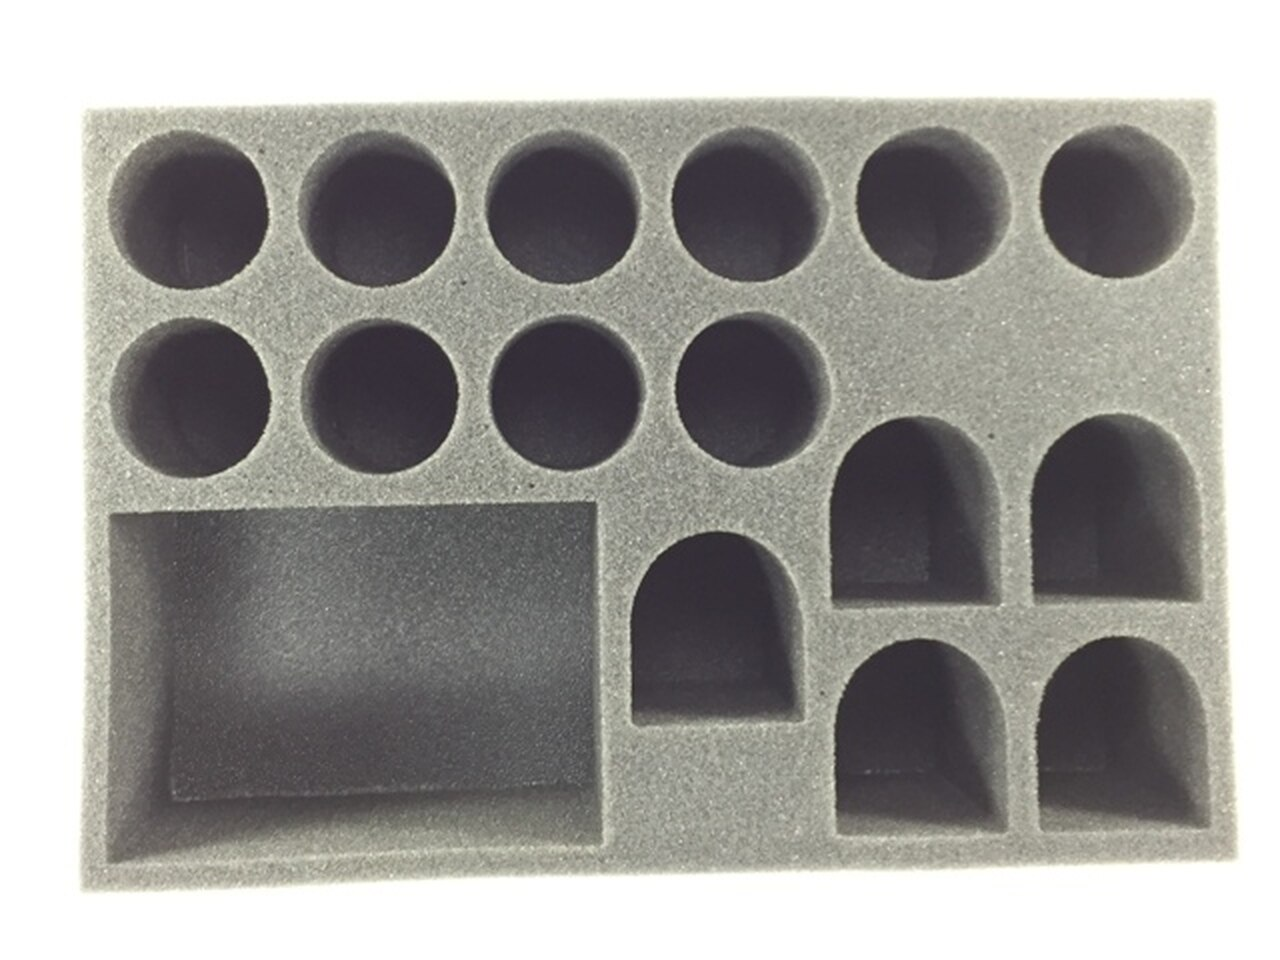 Battlefoam: WH40K: Space Marine: 1 Rhino 5 Terminator 10 Troop Foam Tray (BFS-3)